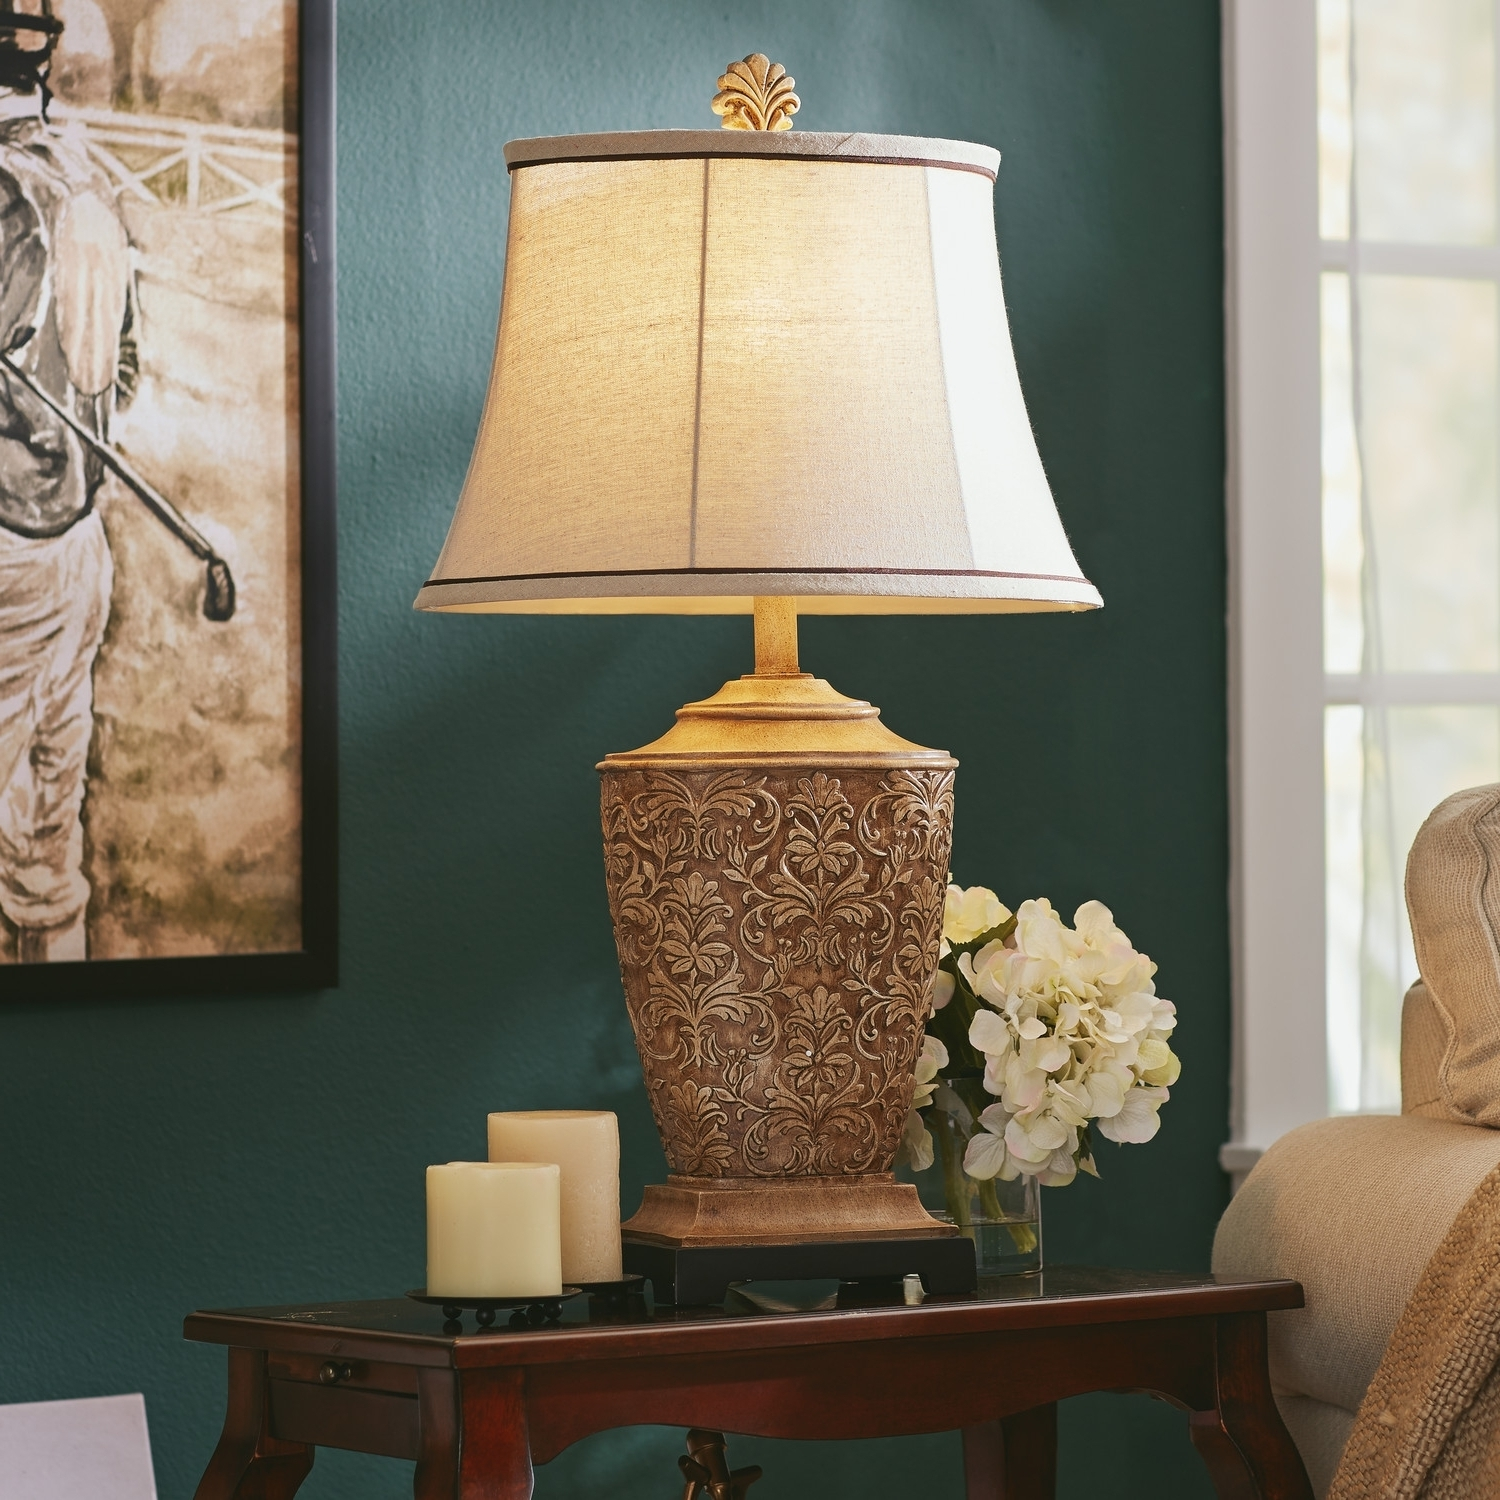 Living Room Table Reading Lamps Within Best And Newest Side Table Lamps For Living Room – Living Room Decorating Design (View 7 of 20)